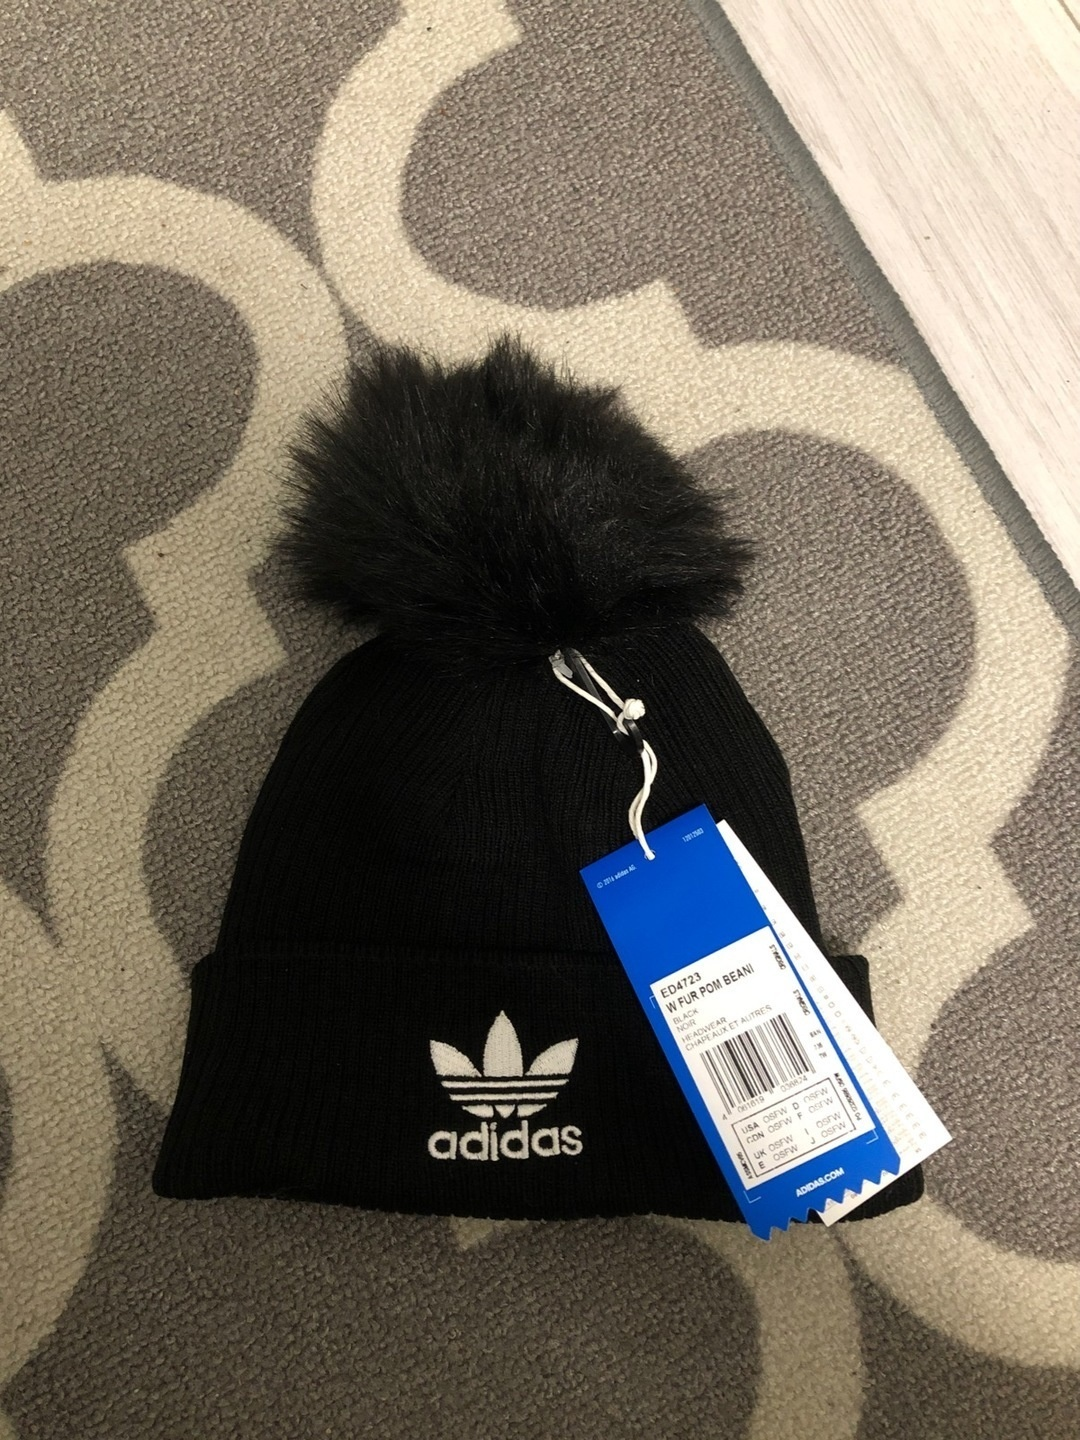 Women's hats & caps - ADIDAS photo 1